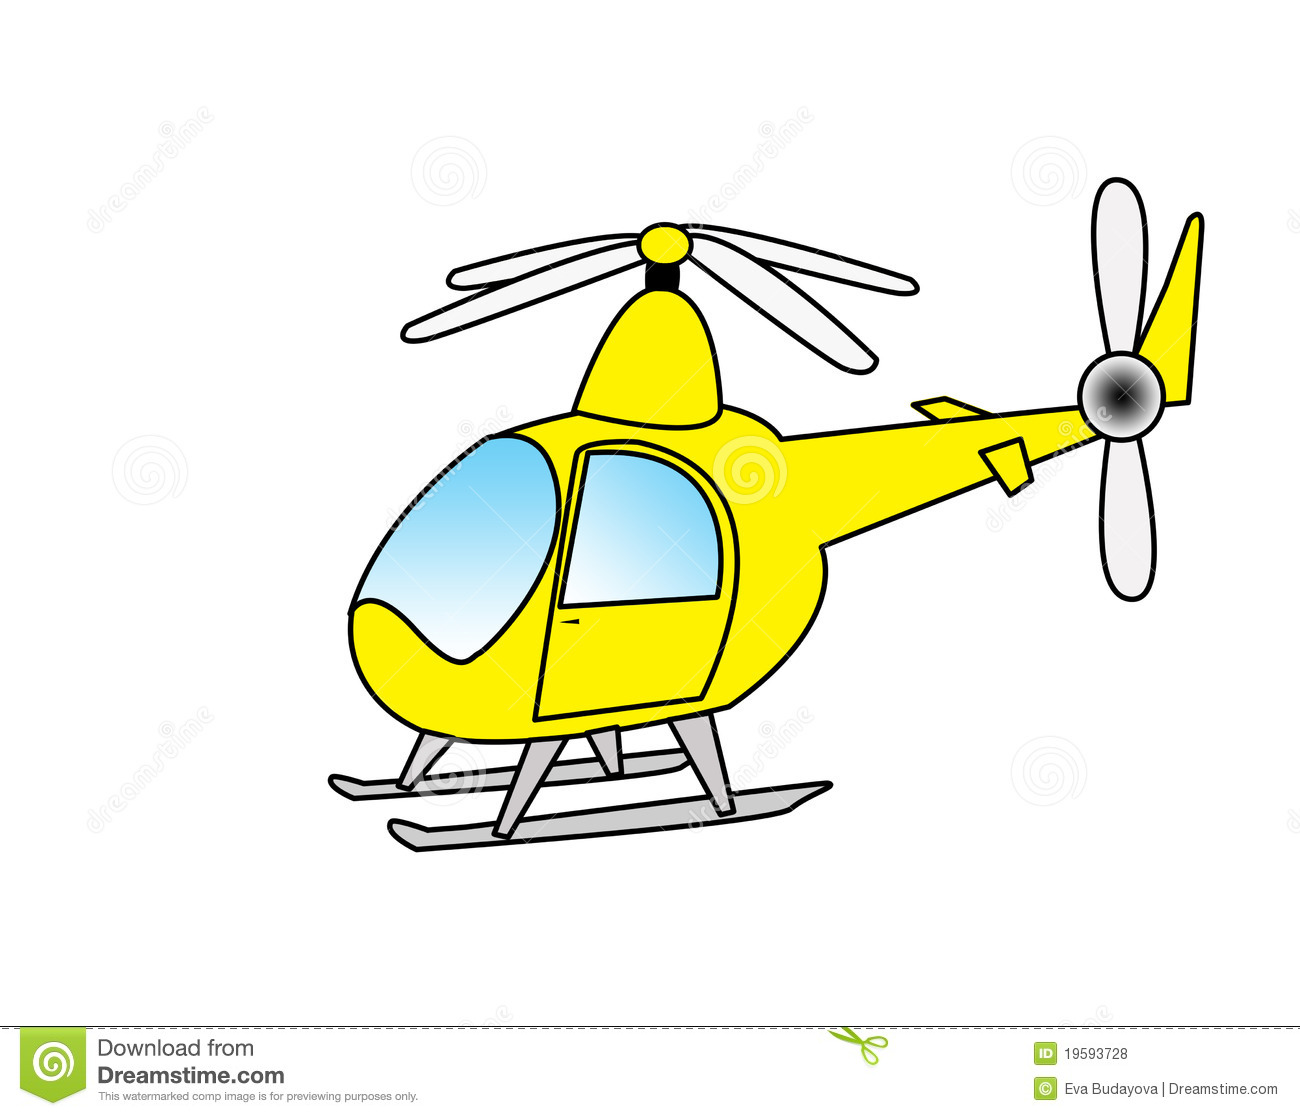 Helicopter clipart yellow helicopter. Clip art bay